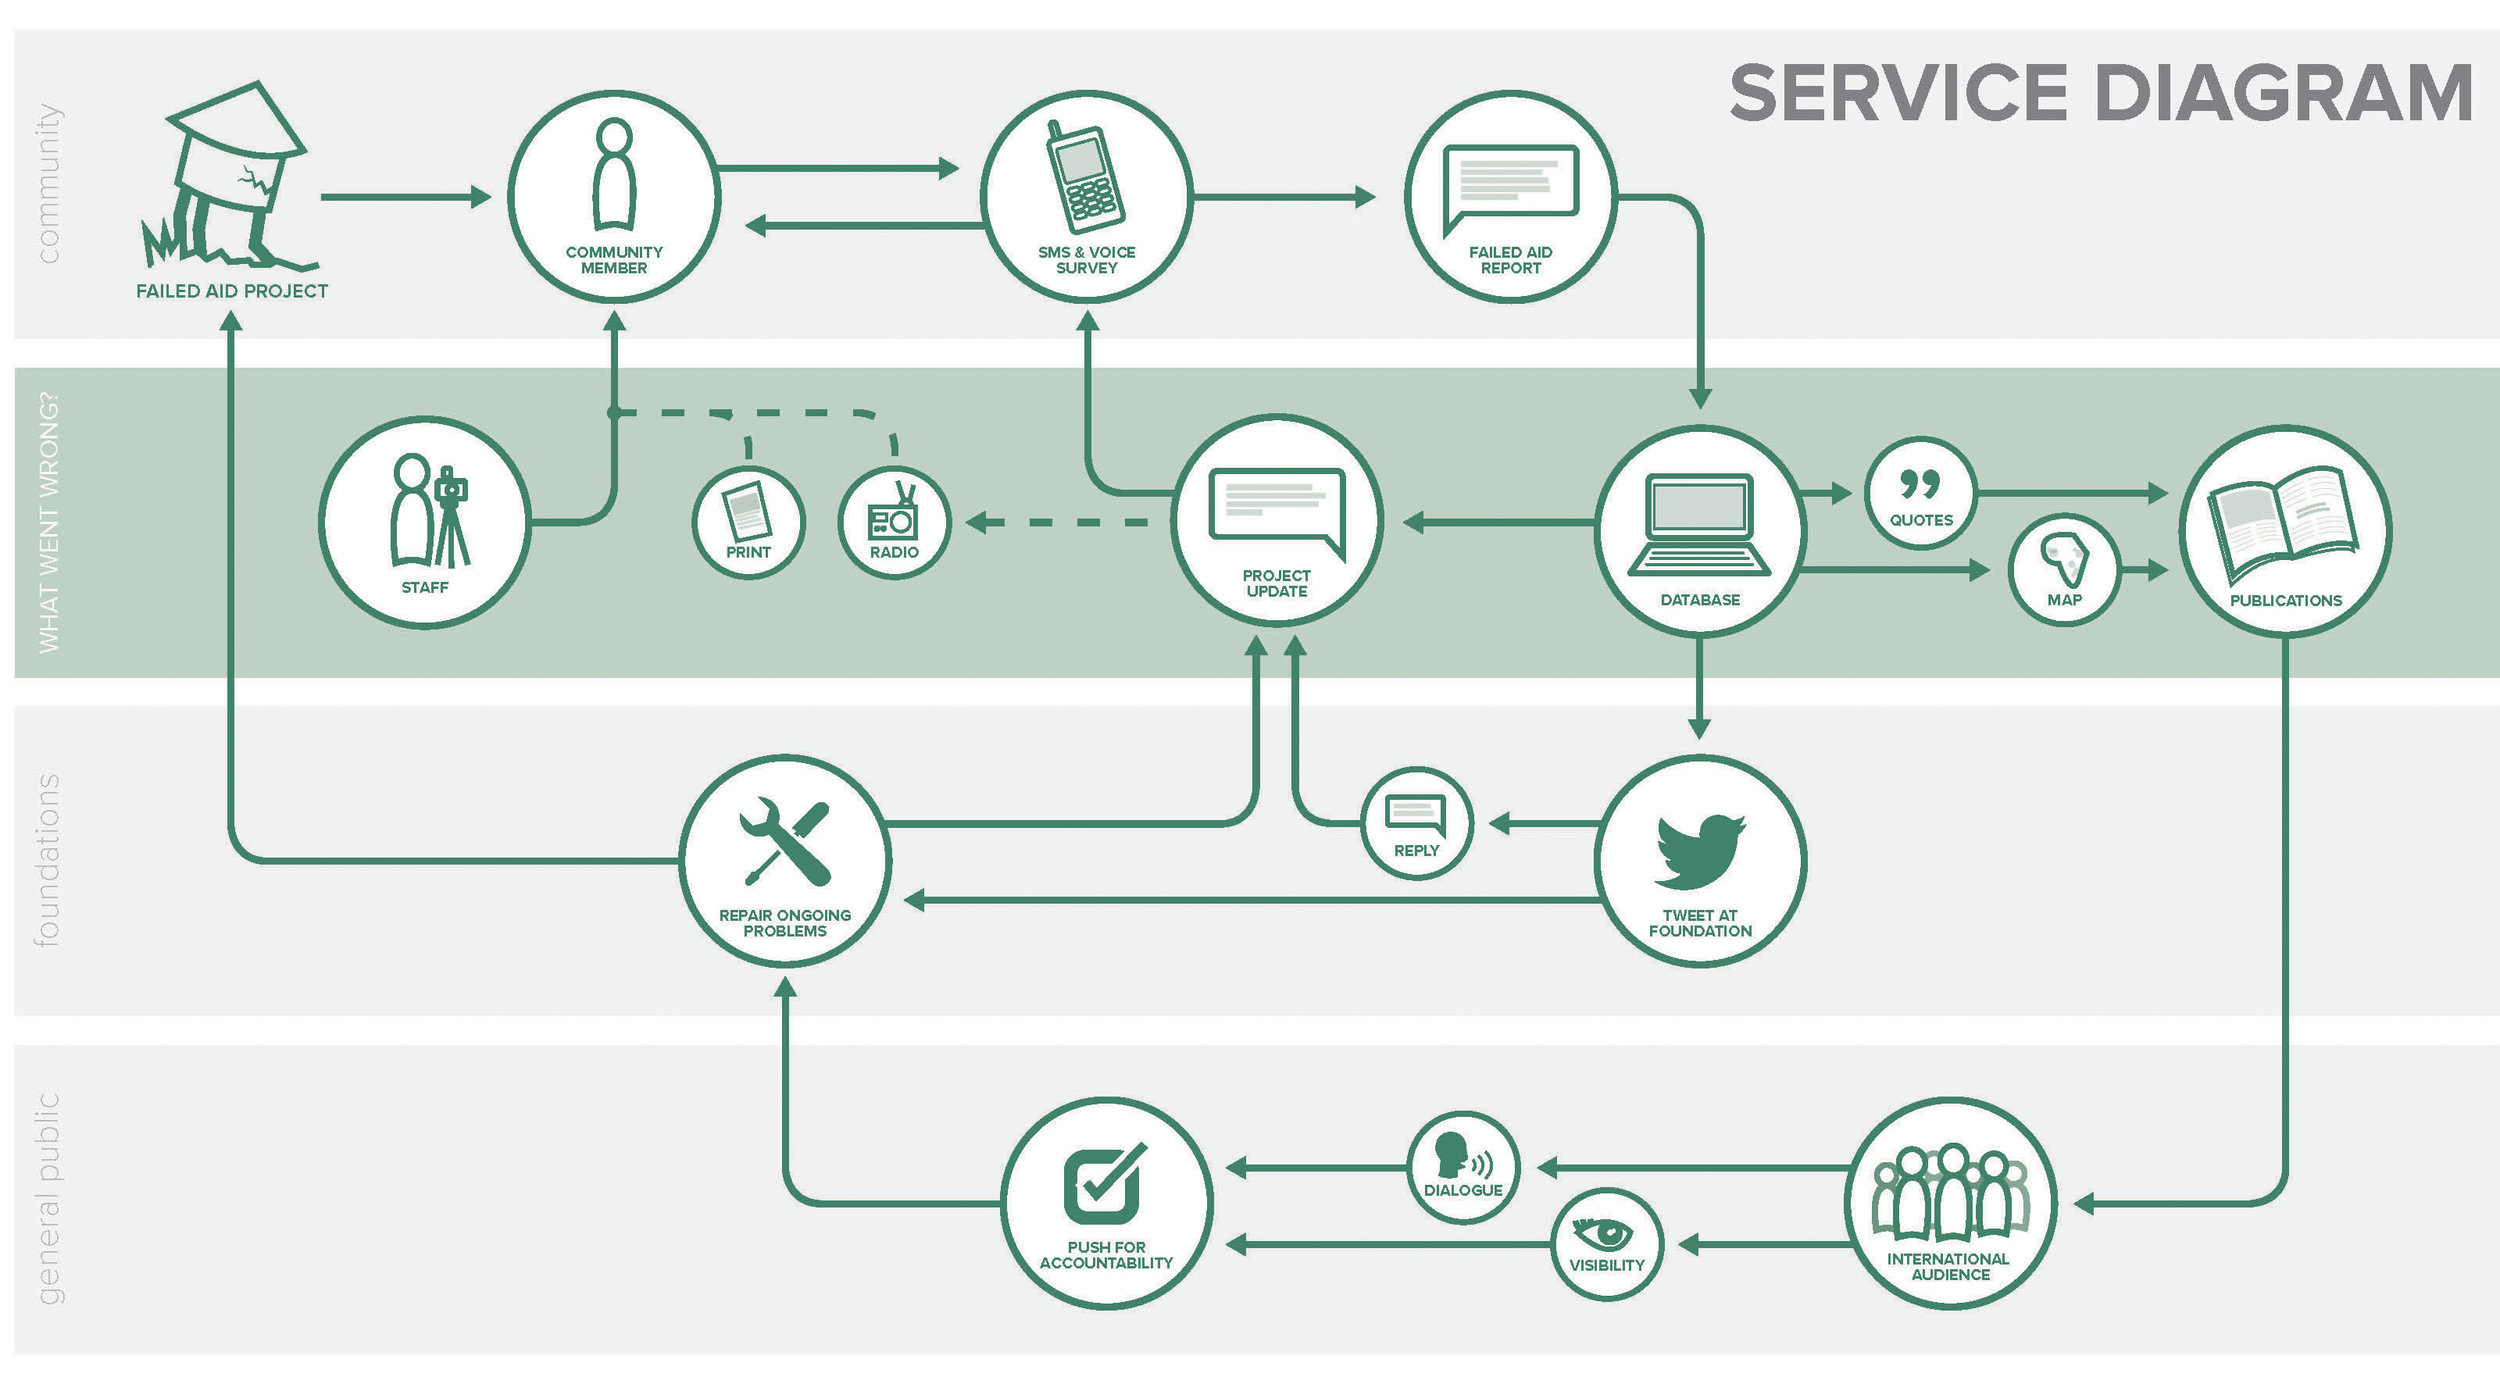 What Went Wrong Service Diagram.jpg